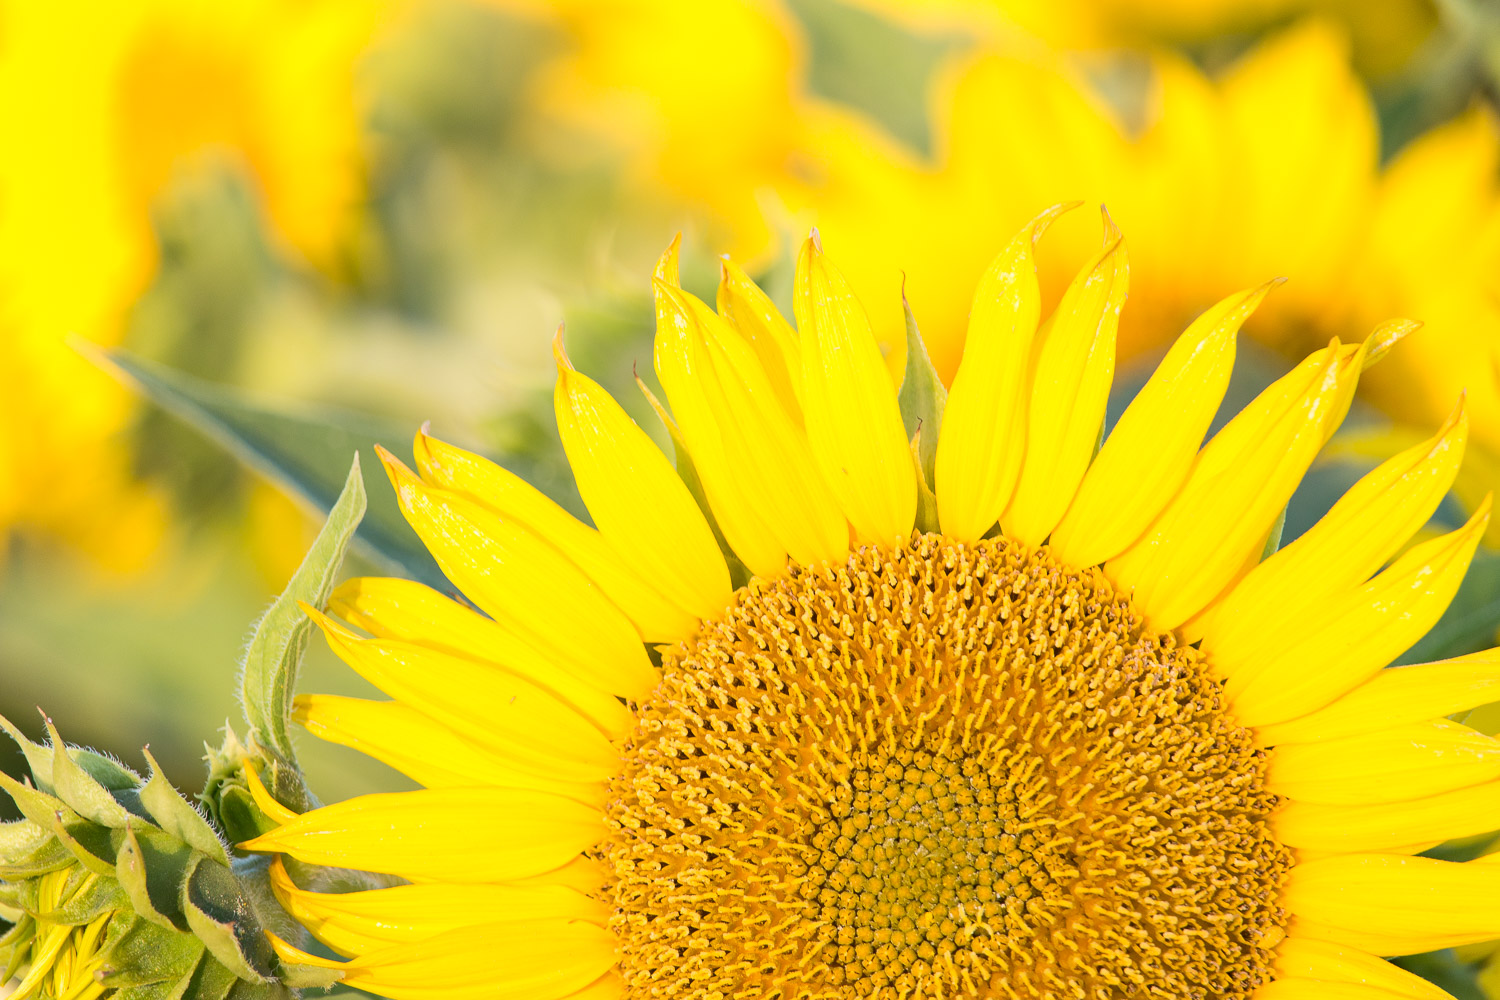 6_29_16 _sunflowers-3.jpg